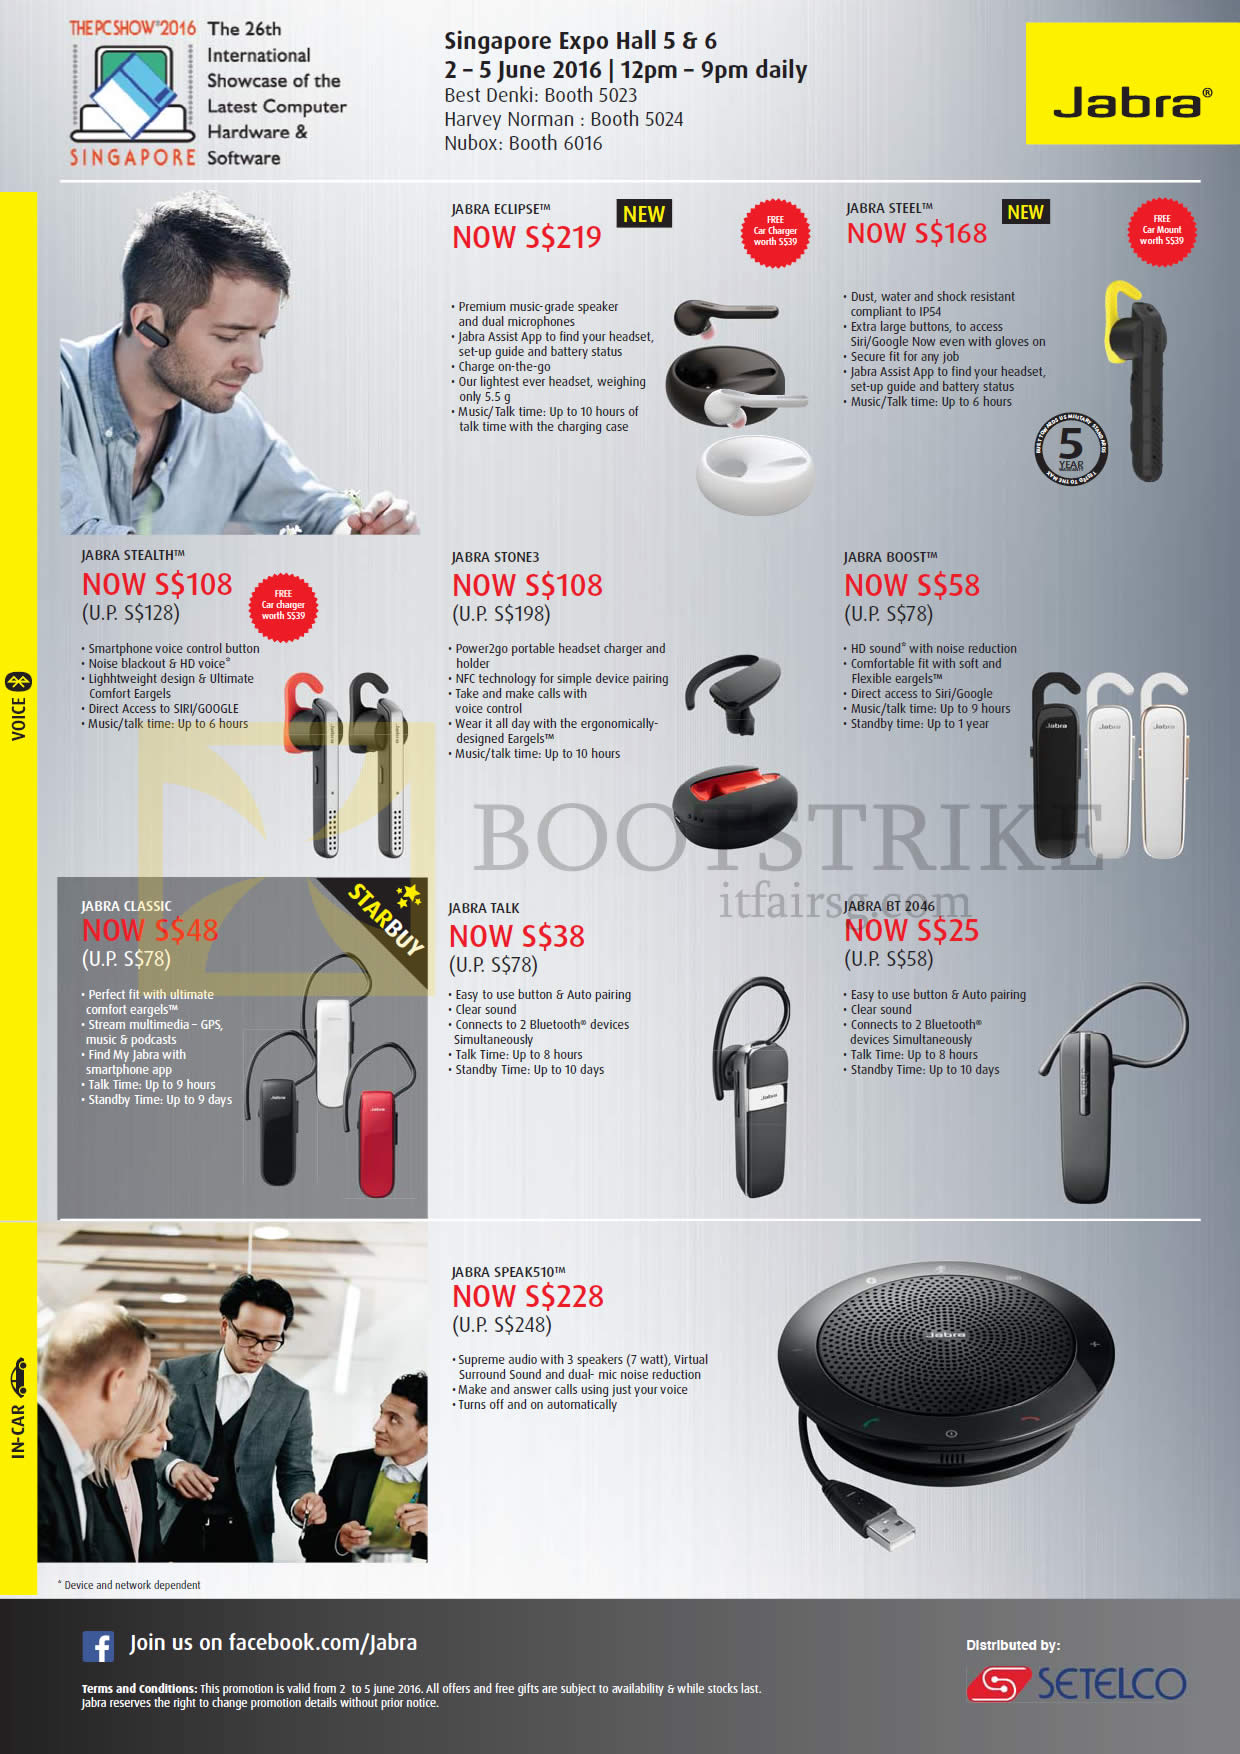 Jabra Bluetooth Headsets Eclipse Steel Stealth Stone3 Boost Headset Pc Show 2016 Price List Image Brochure Of